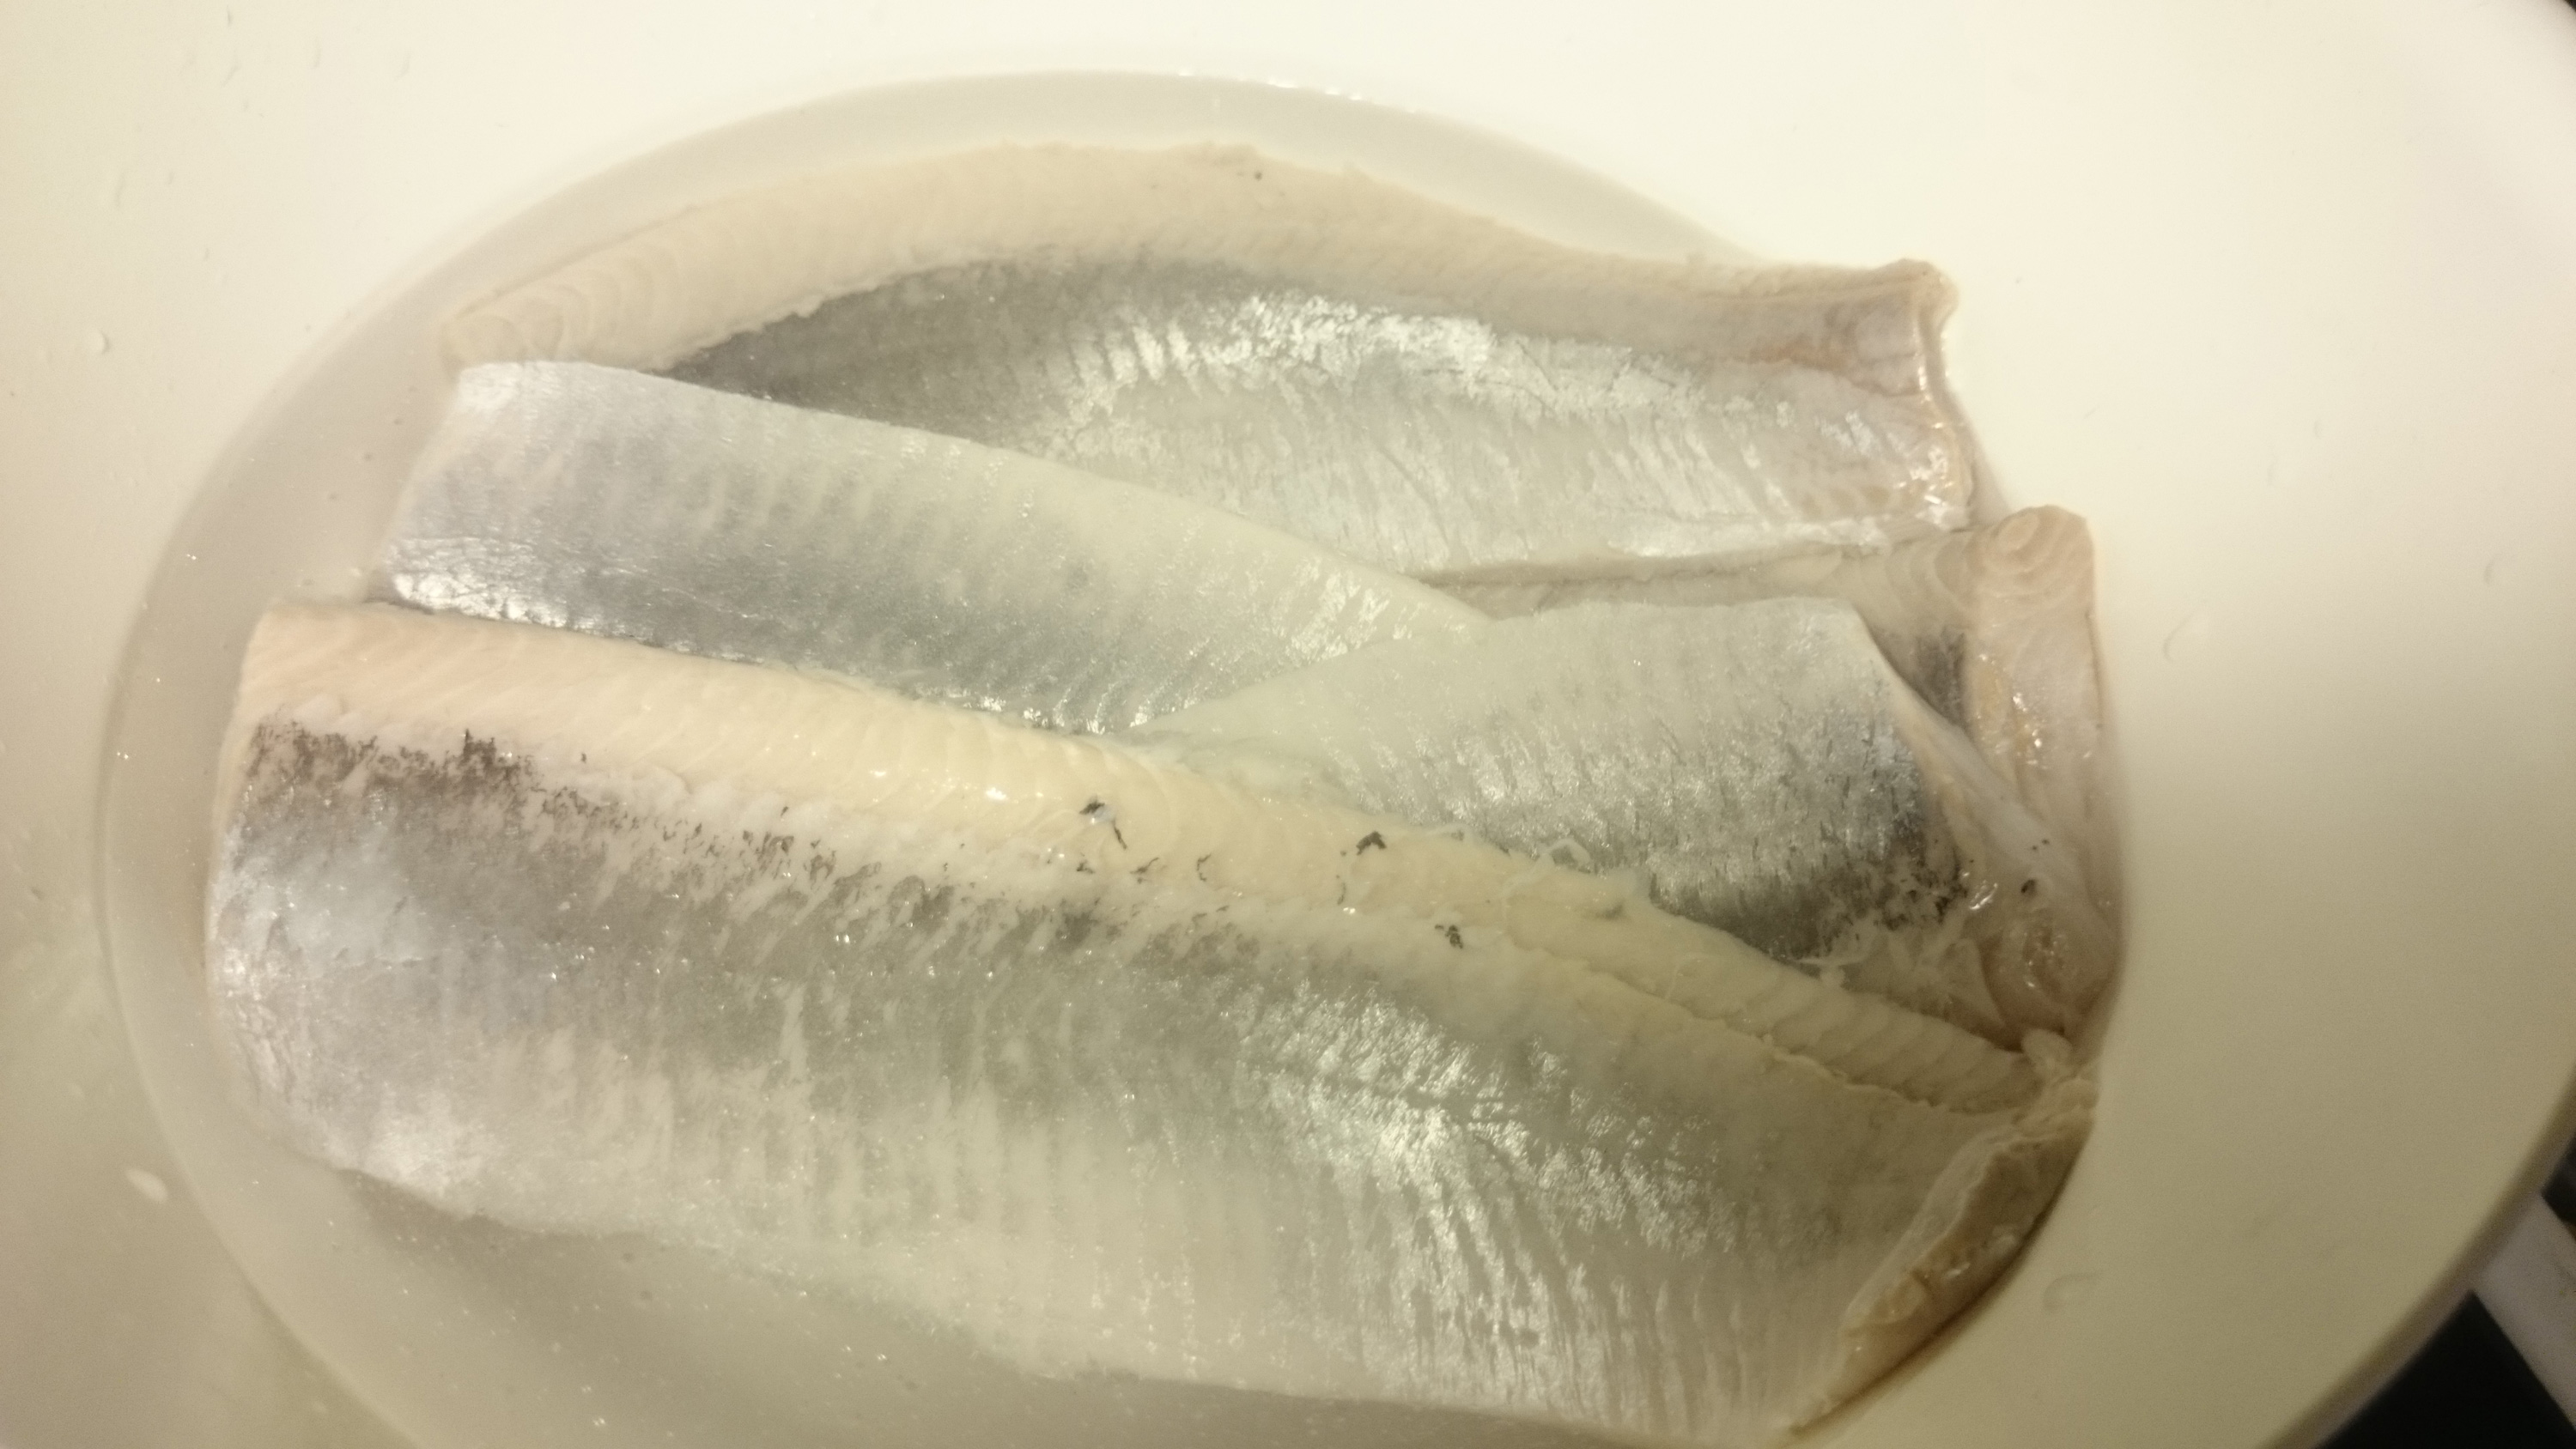 1. Put the herrings in water and leave in refrigerator for one night.